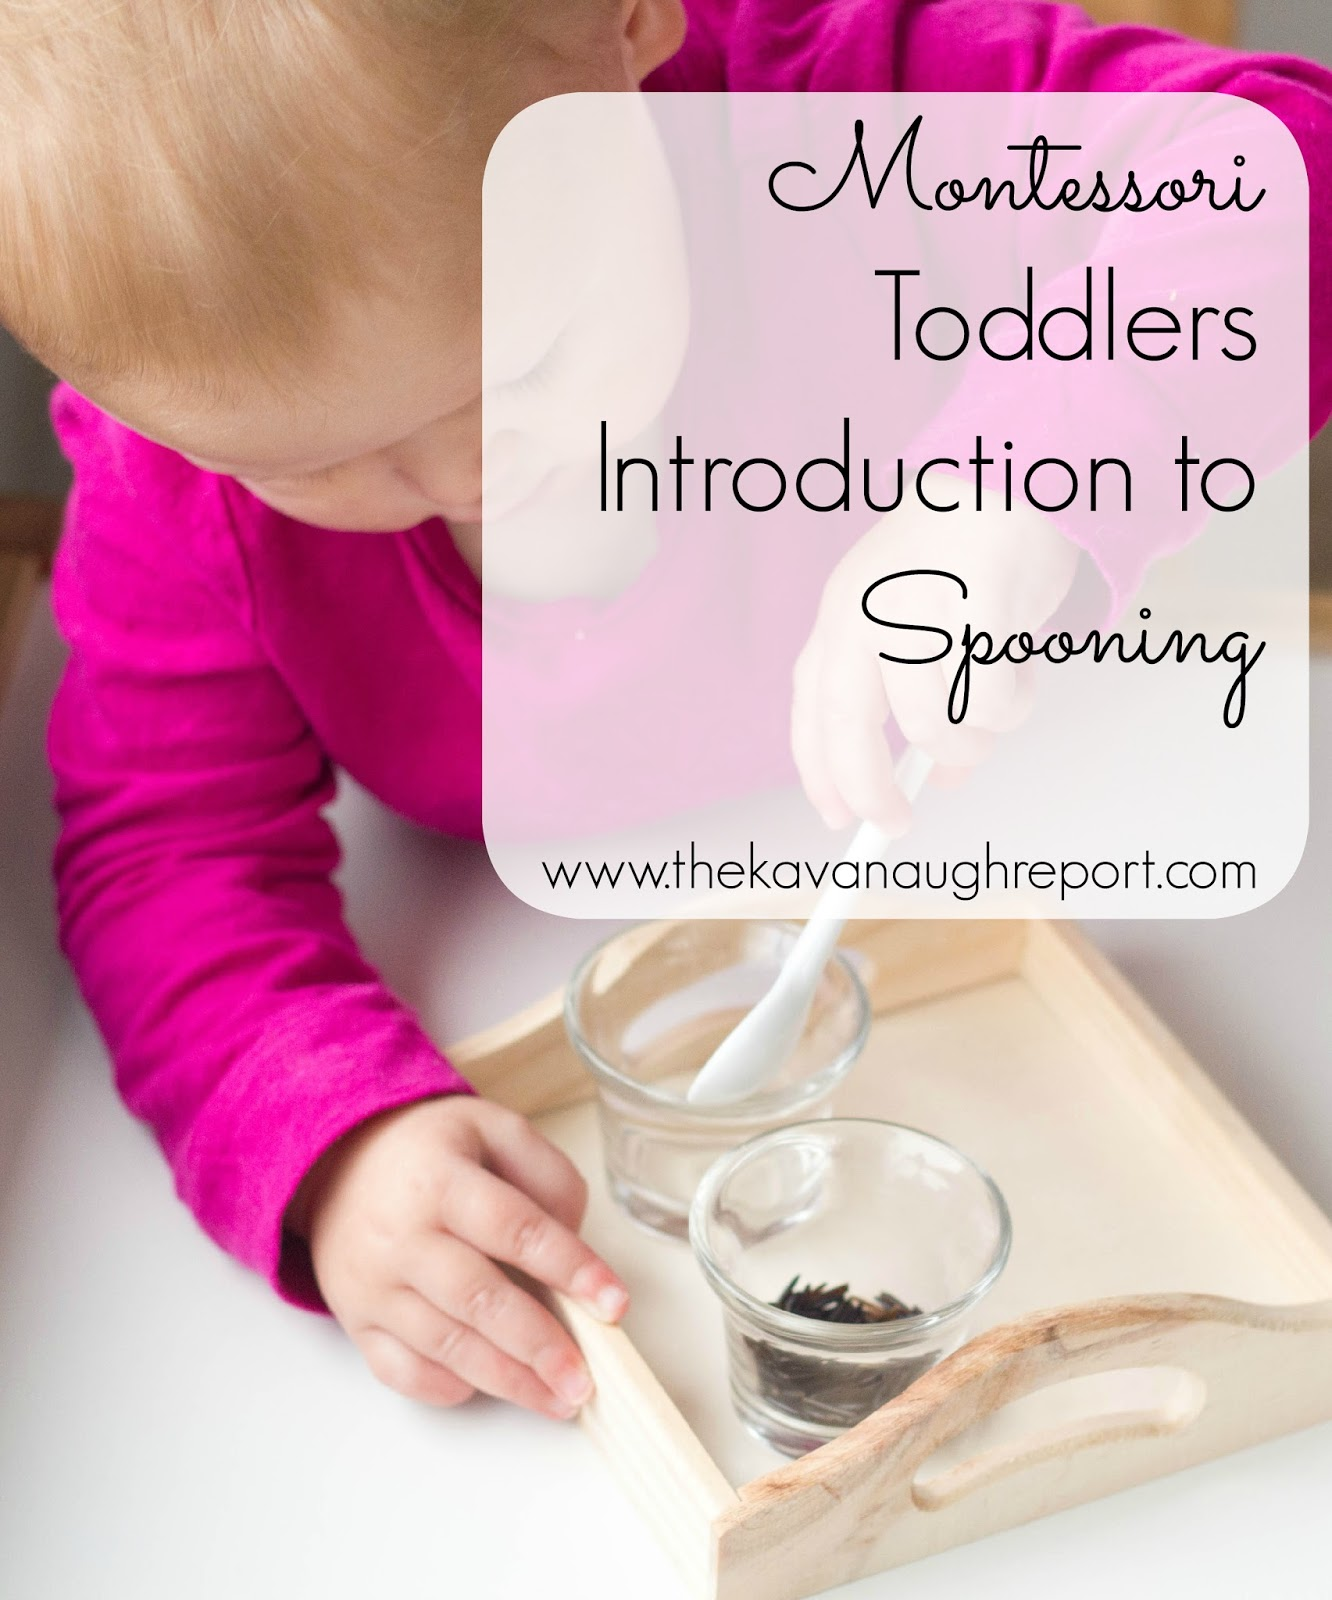 introduction to montessori This is a short video produced as part of the national education report to briefly introduce montessori education and the work of the montessori foundation.